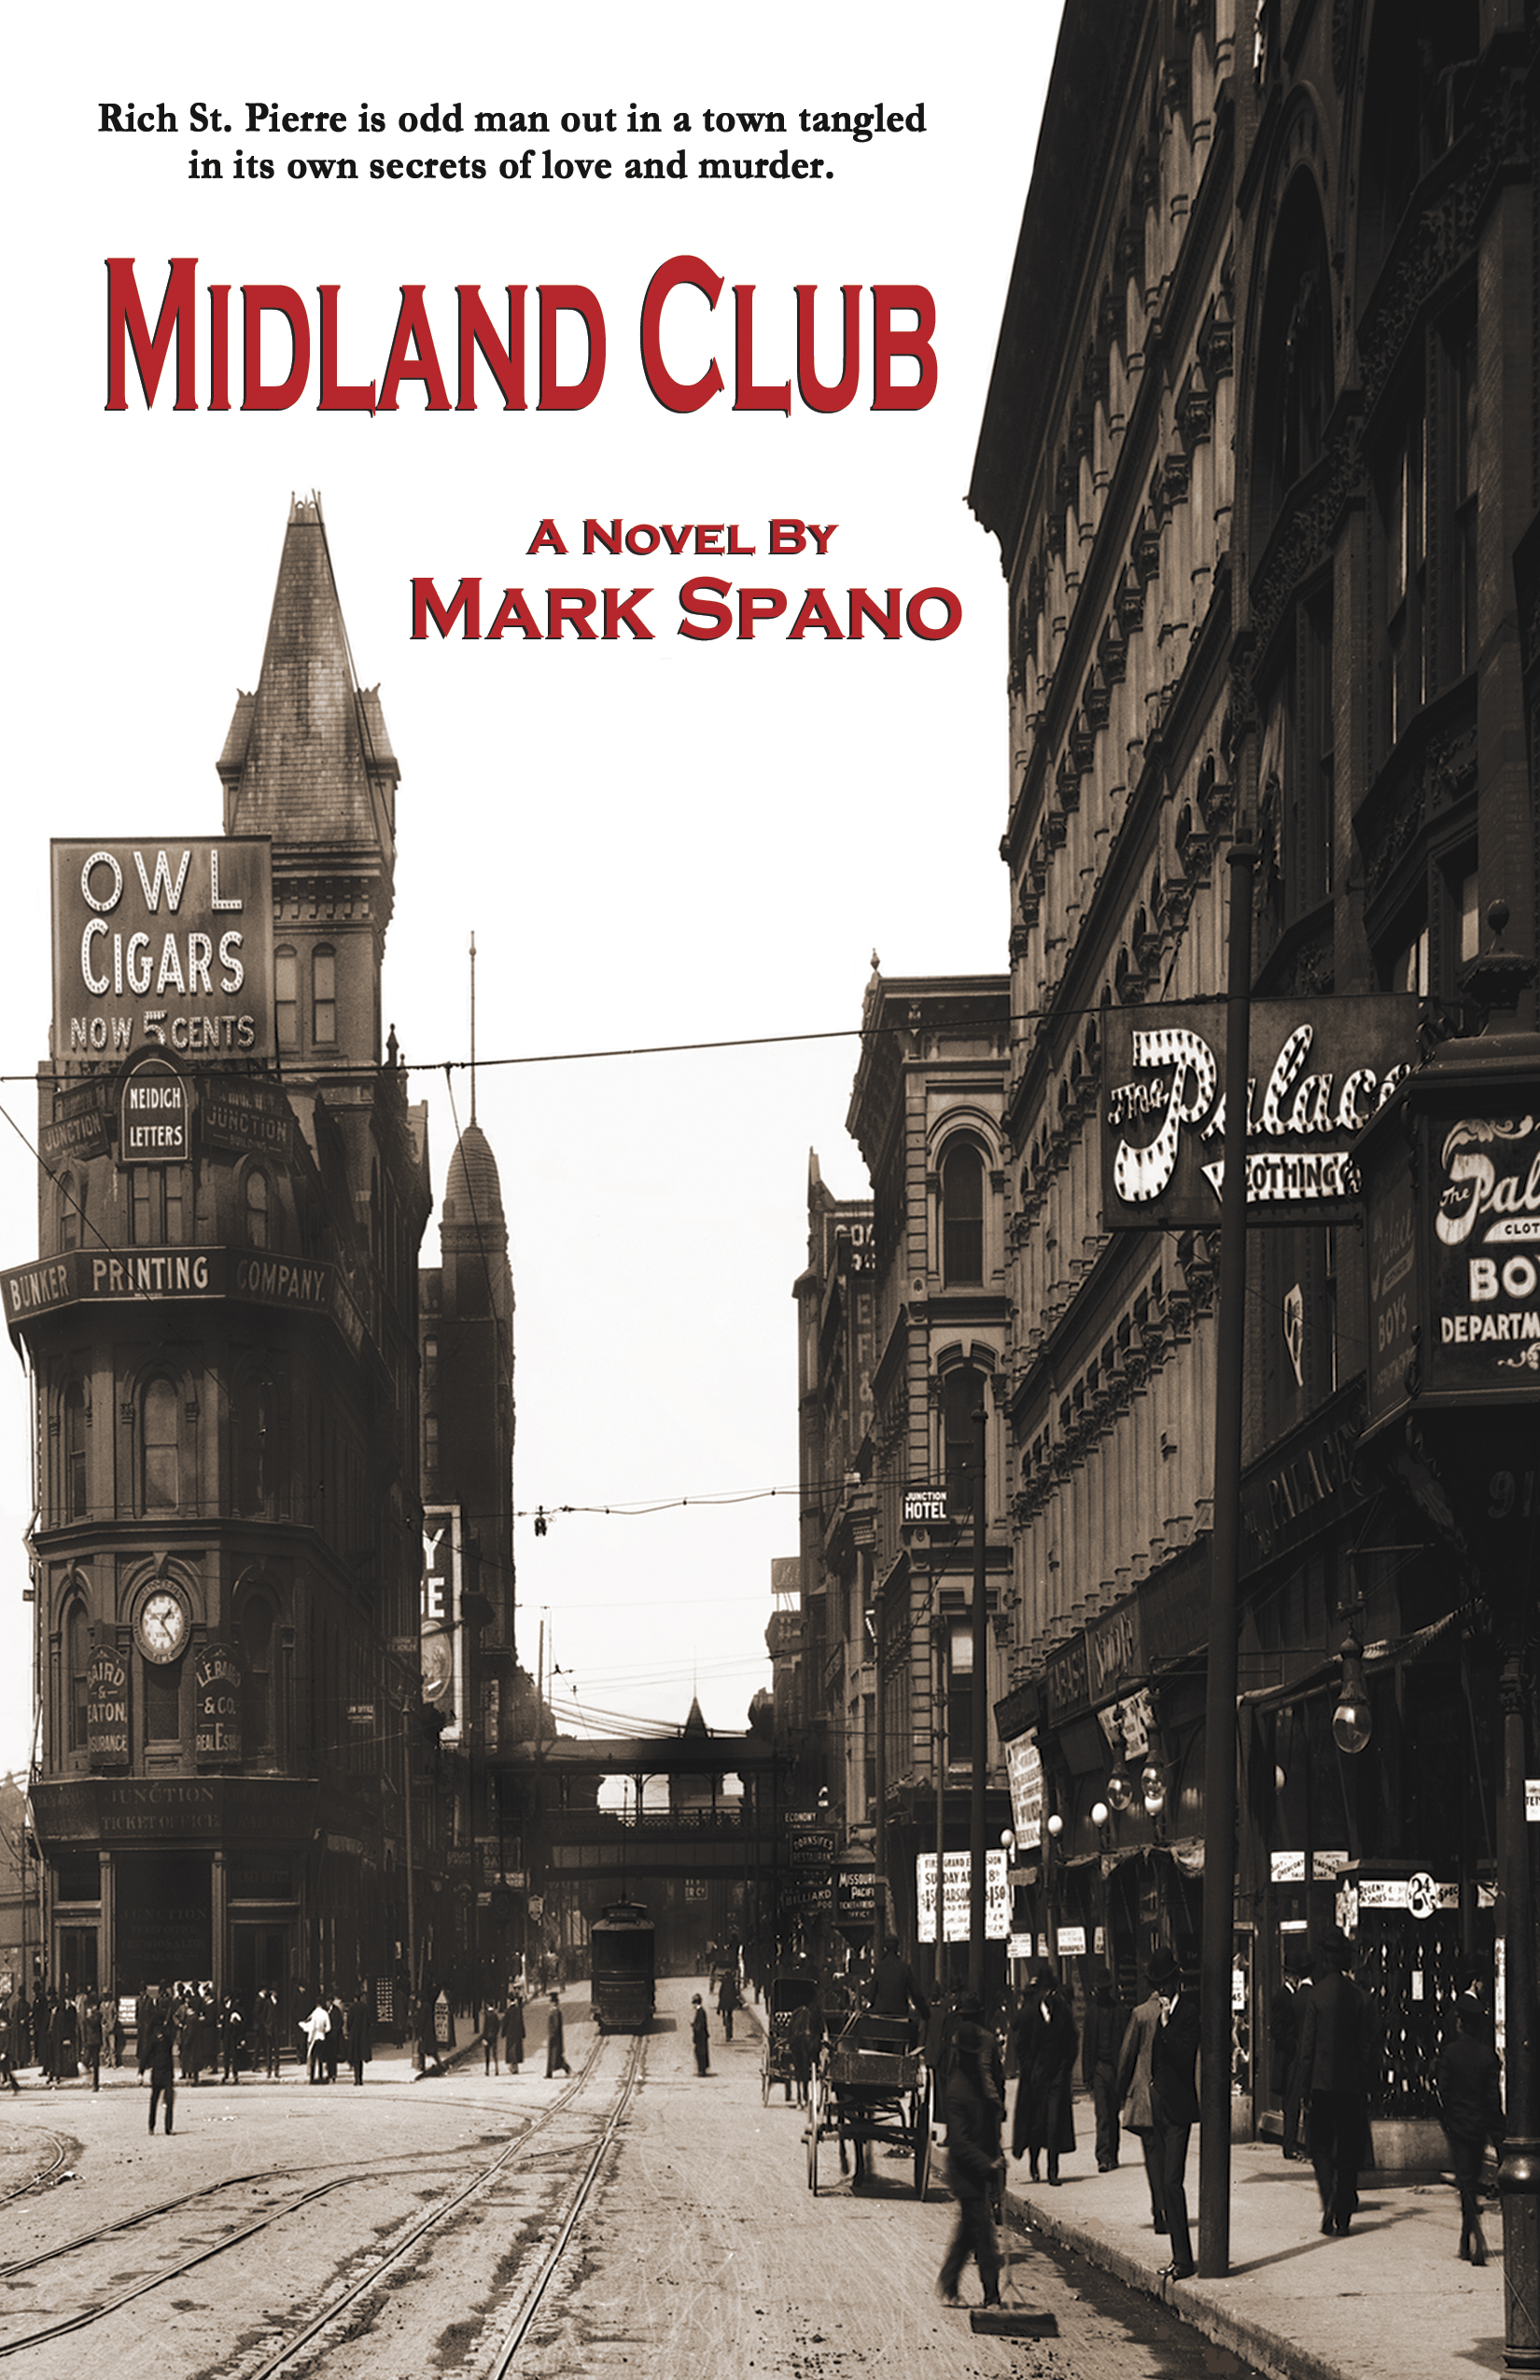 Winston-Salem LGBTQ Center Hosts Author Mark Spano for Book Reading, Signing